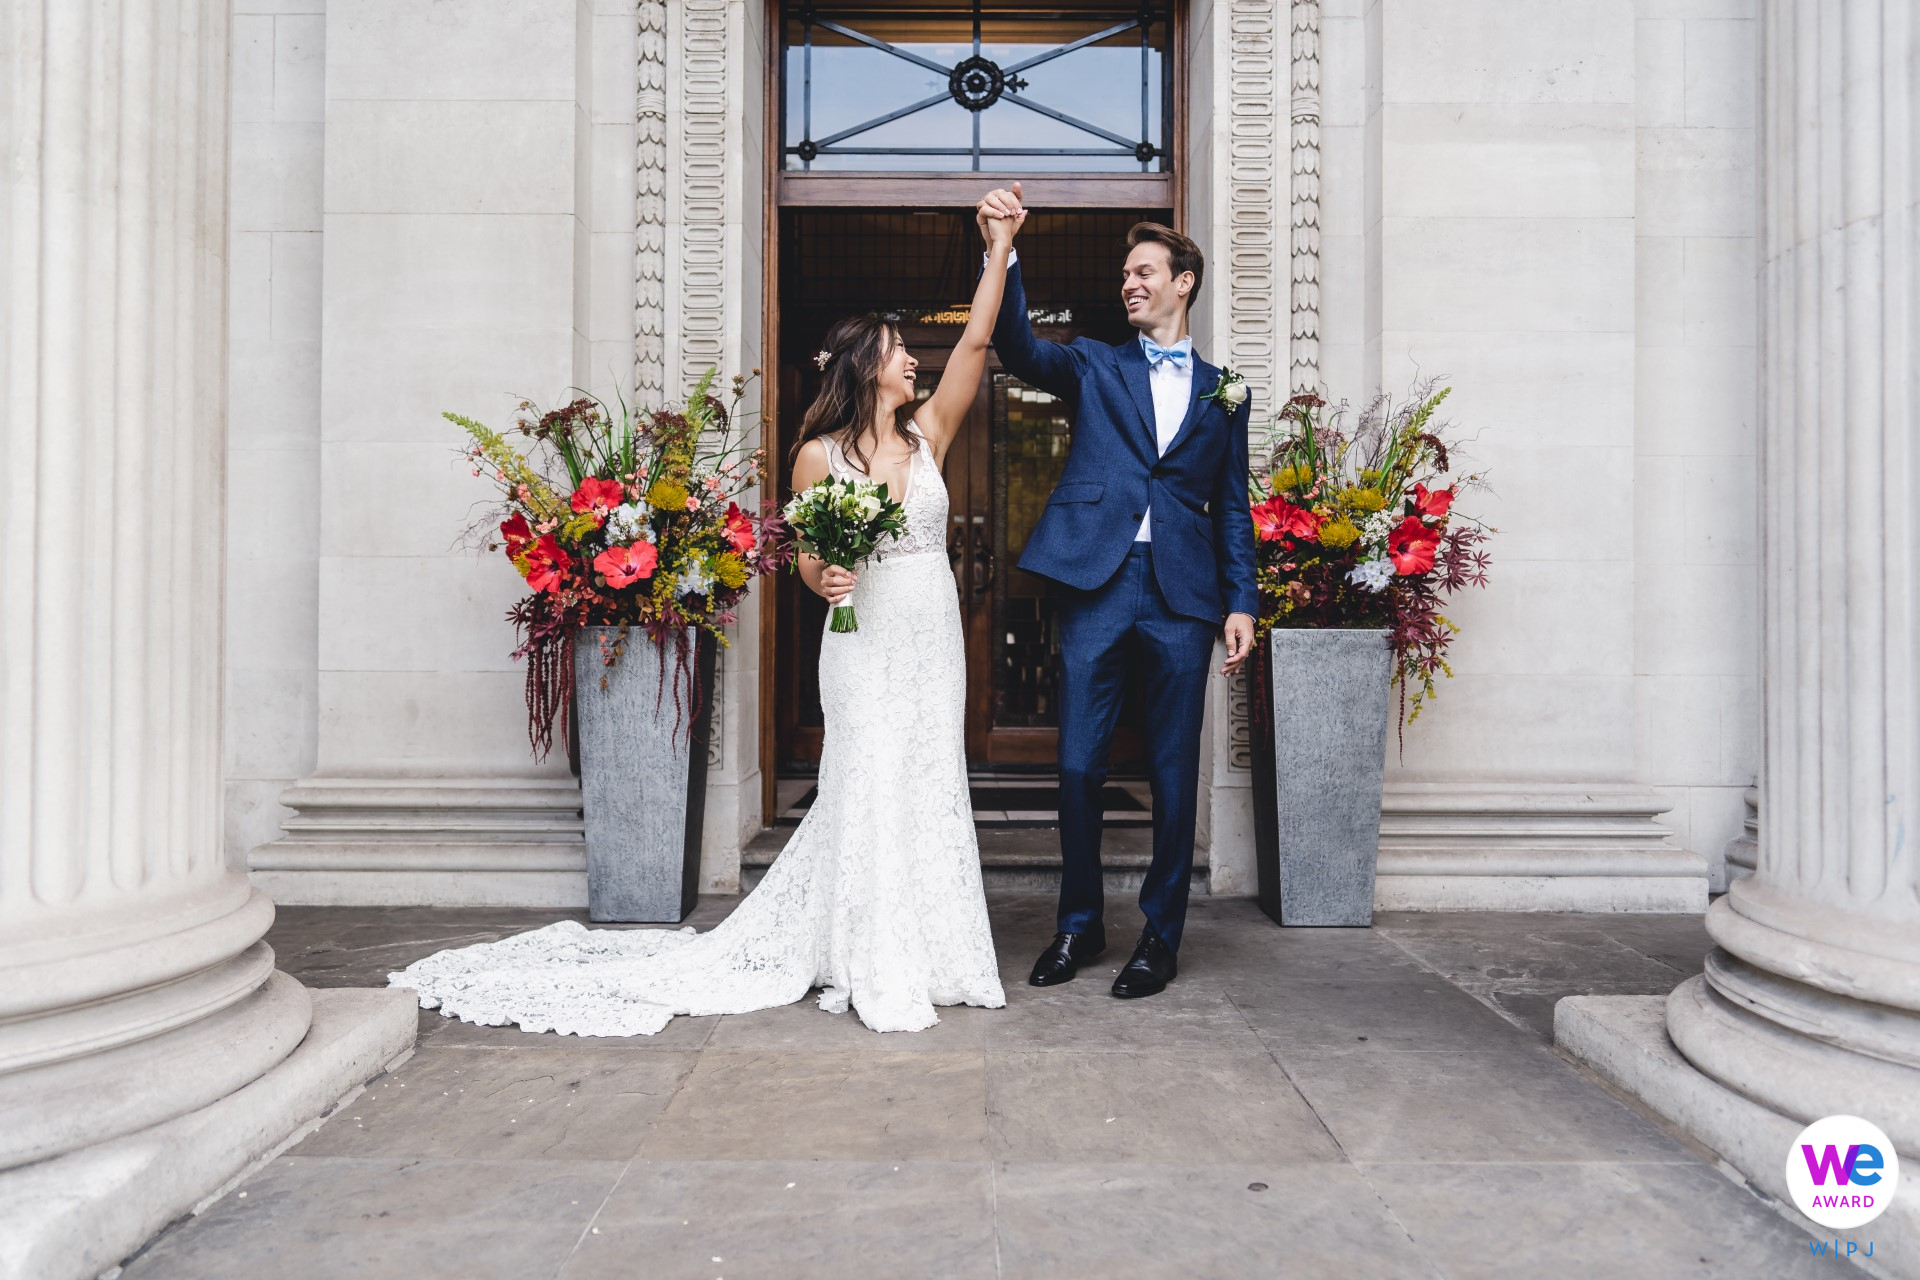 Old Marylebone Town Hall Wedding Photos | The newlyweds were so happy to finally be married